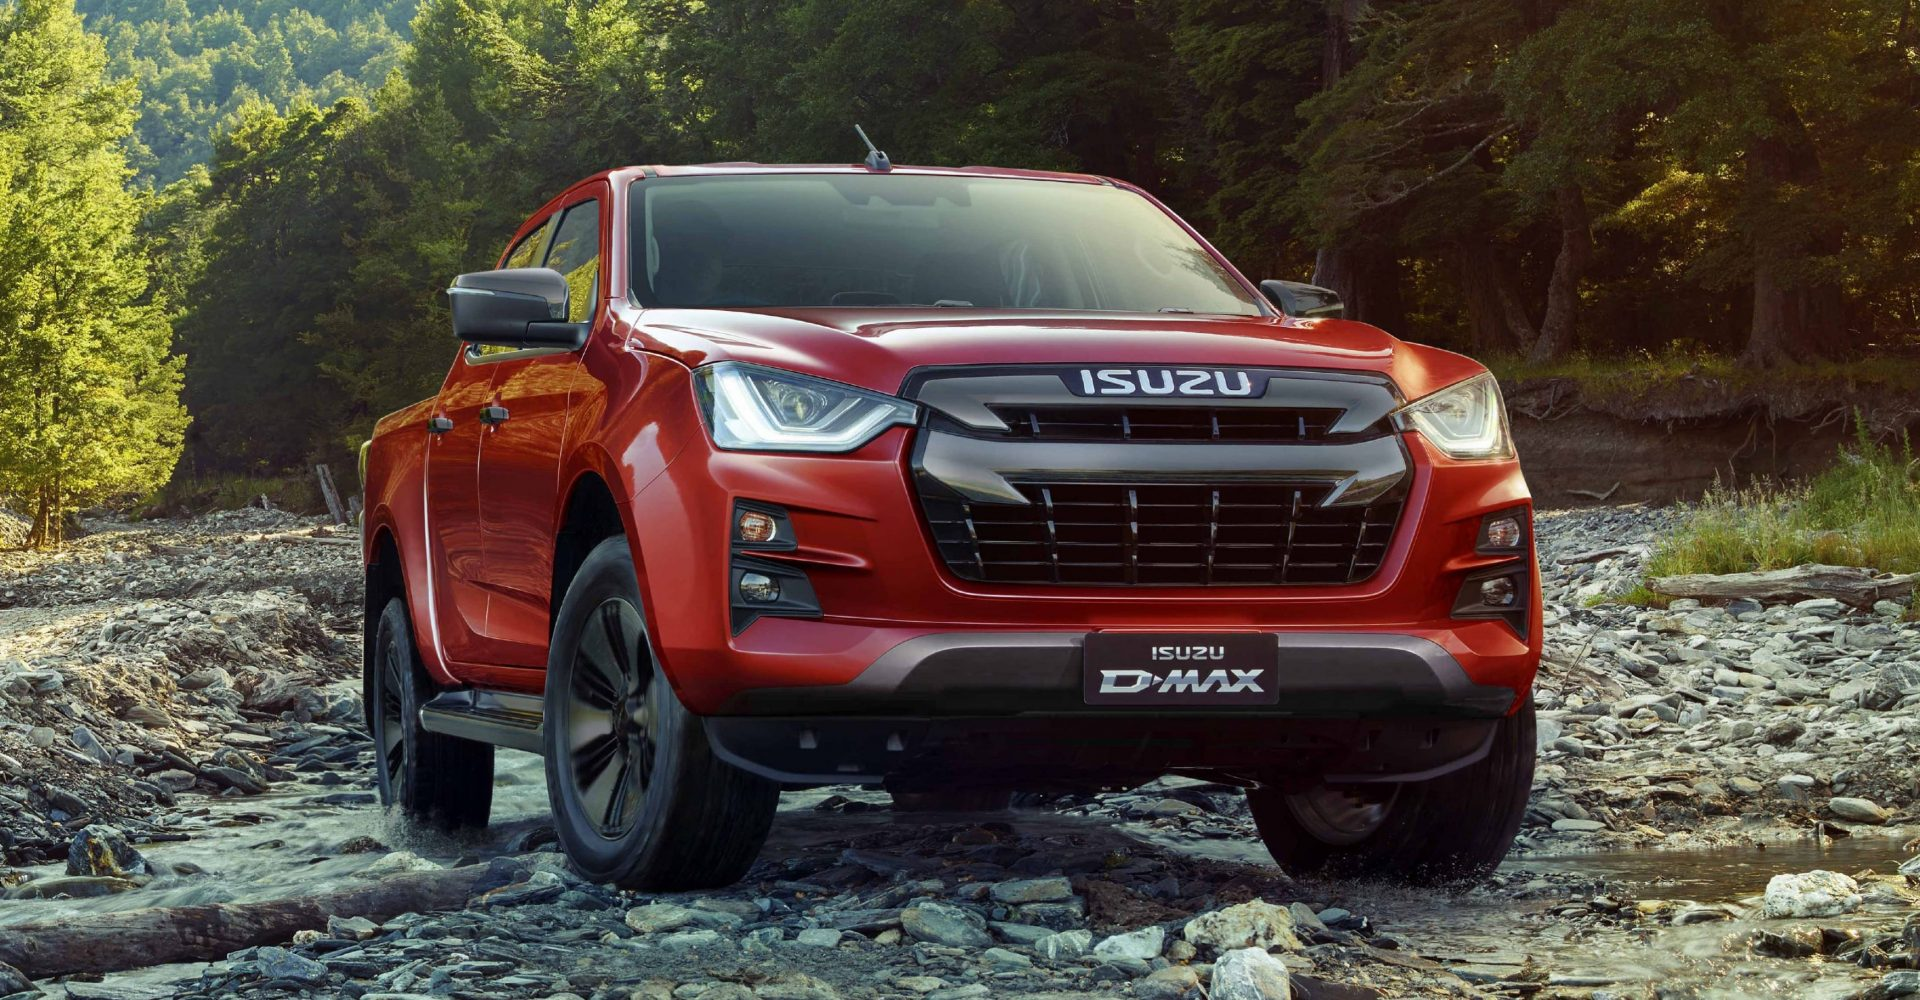 The Isuzu D-Max gets a new face and improved off-road abilities